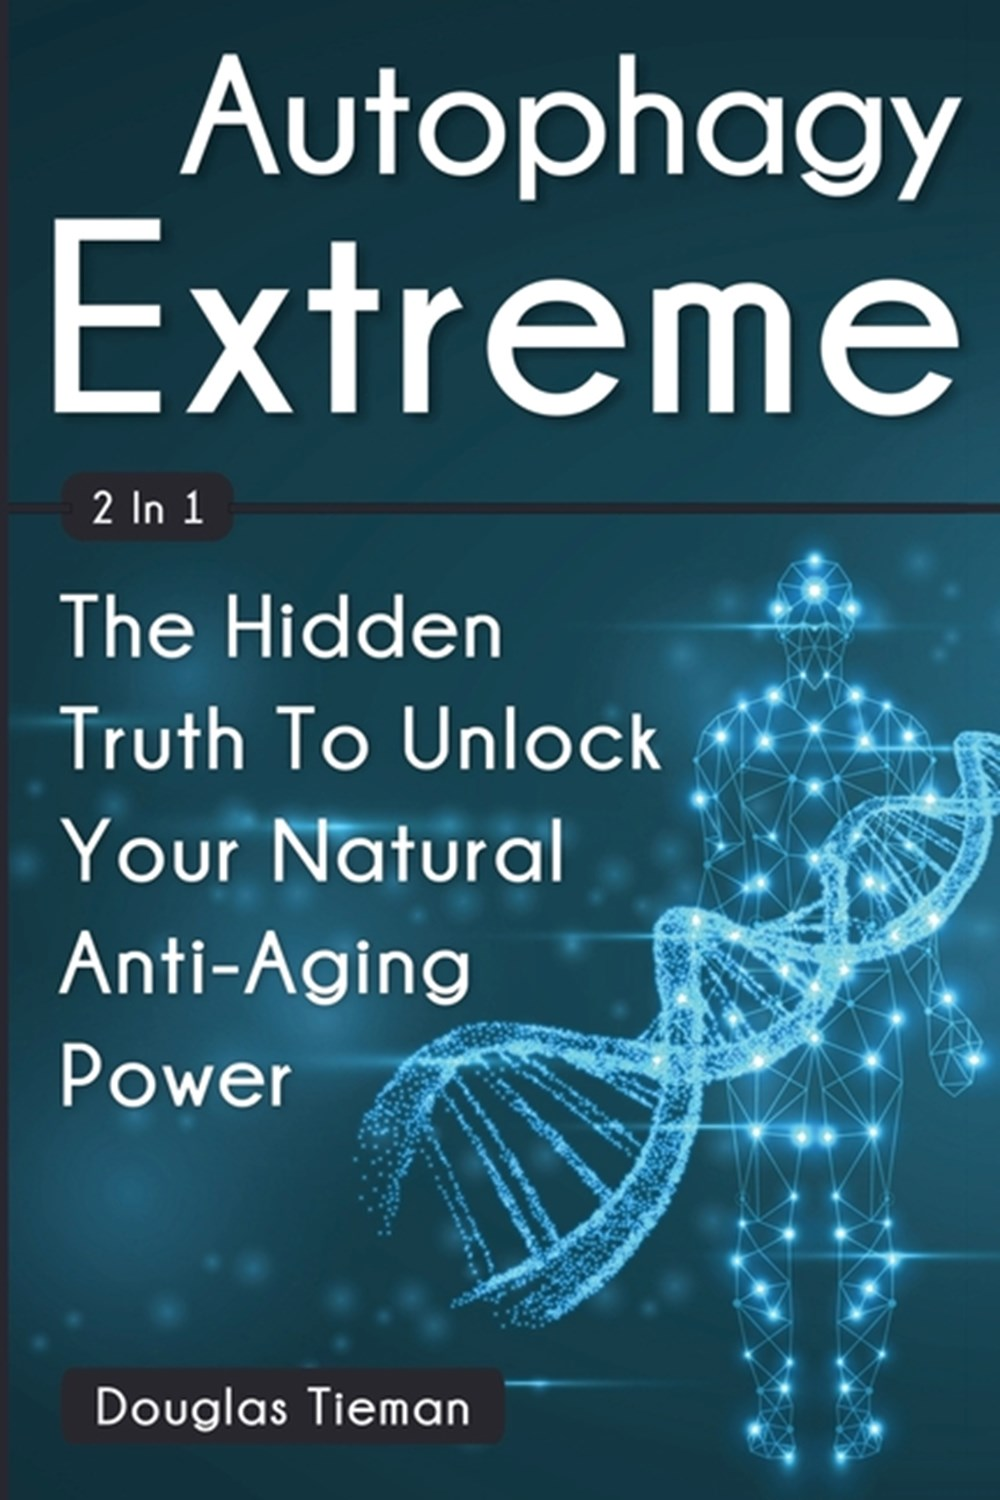 Autophagy Extreme 2 In 1 The Hidden Truth To Unlock Your Natural Anti-Aging Power